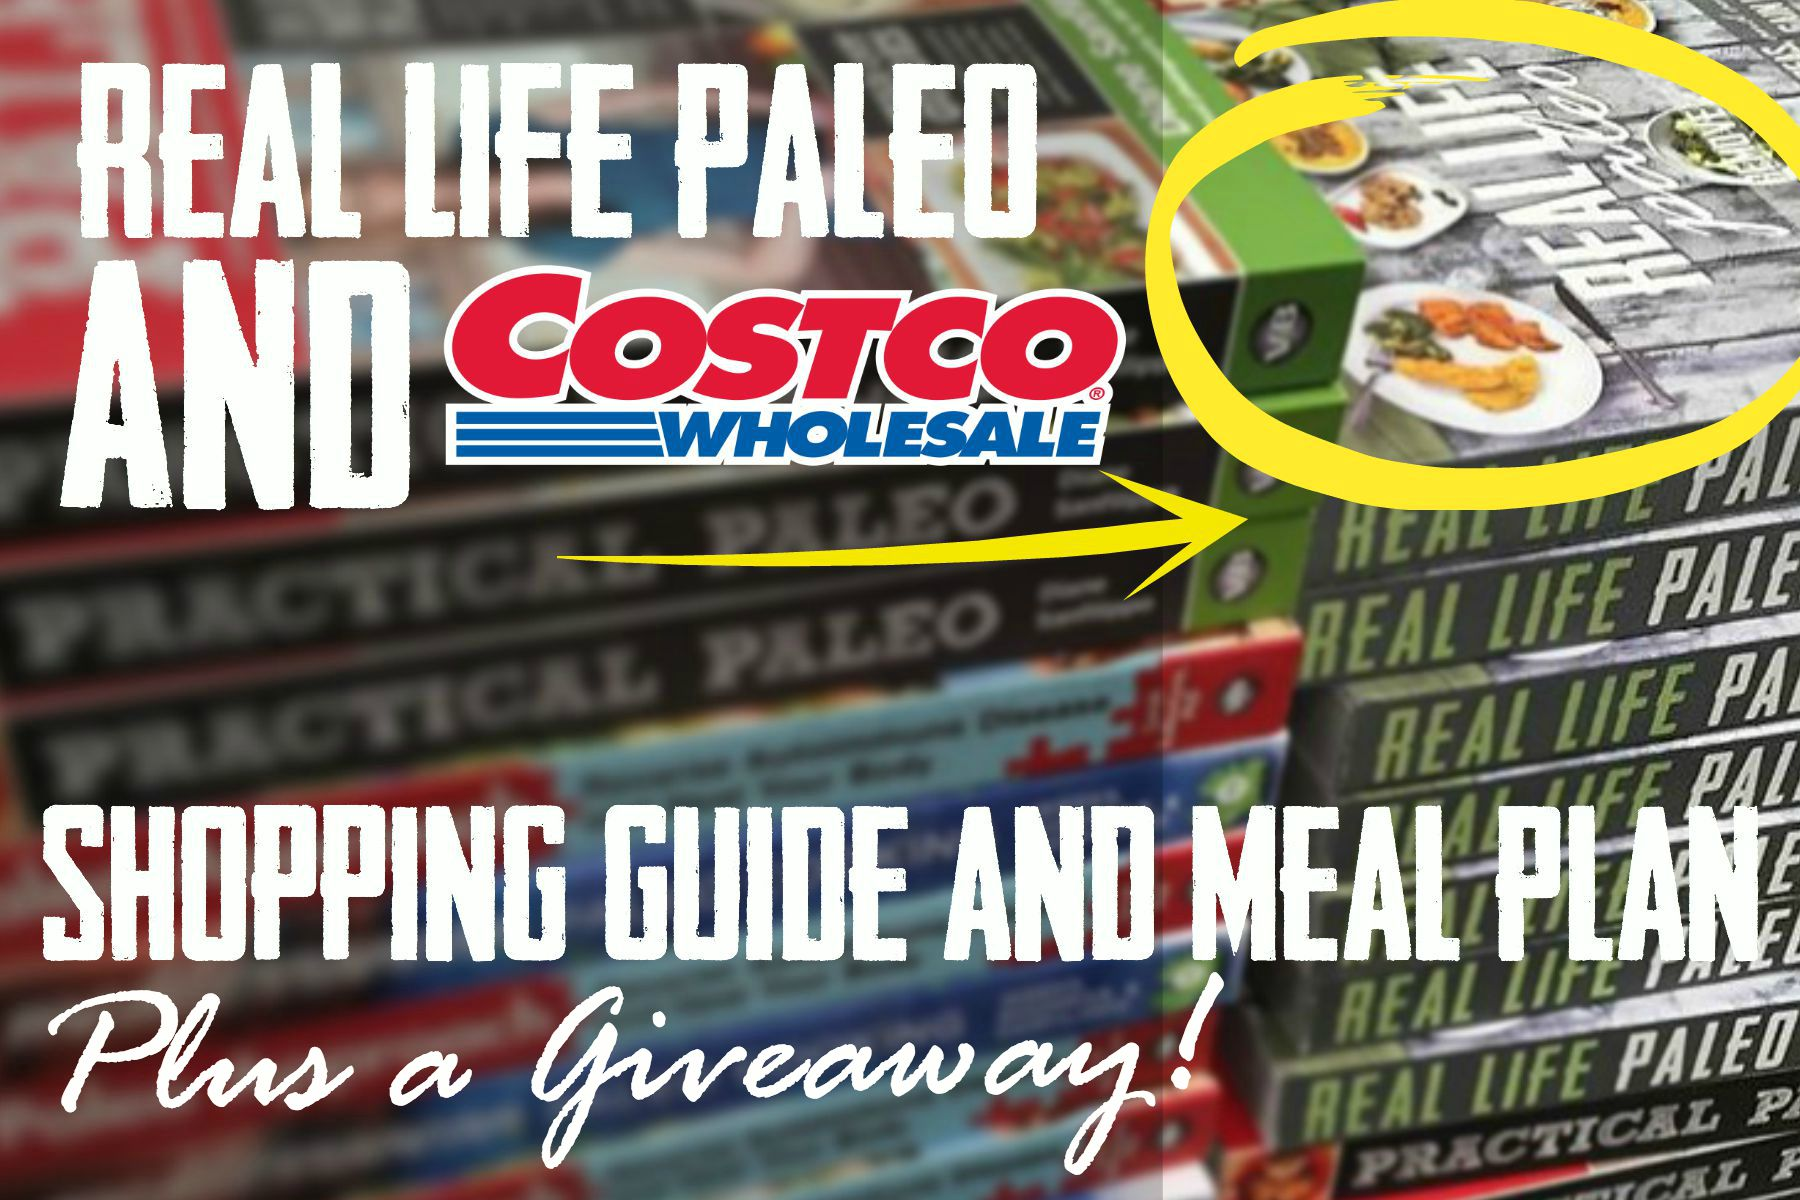 your real life paleo costco shopping guide meal plan